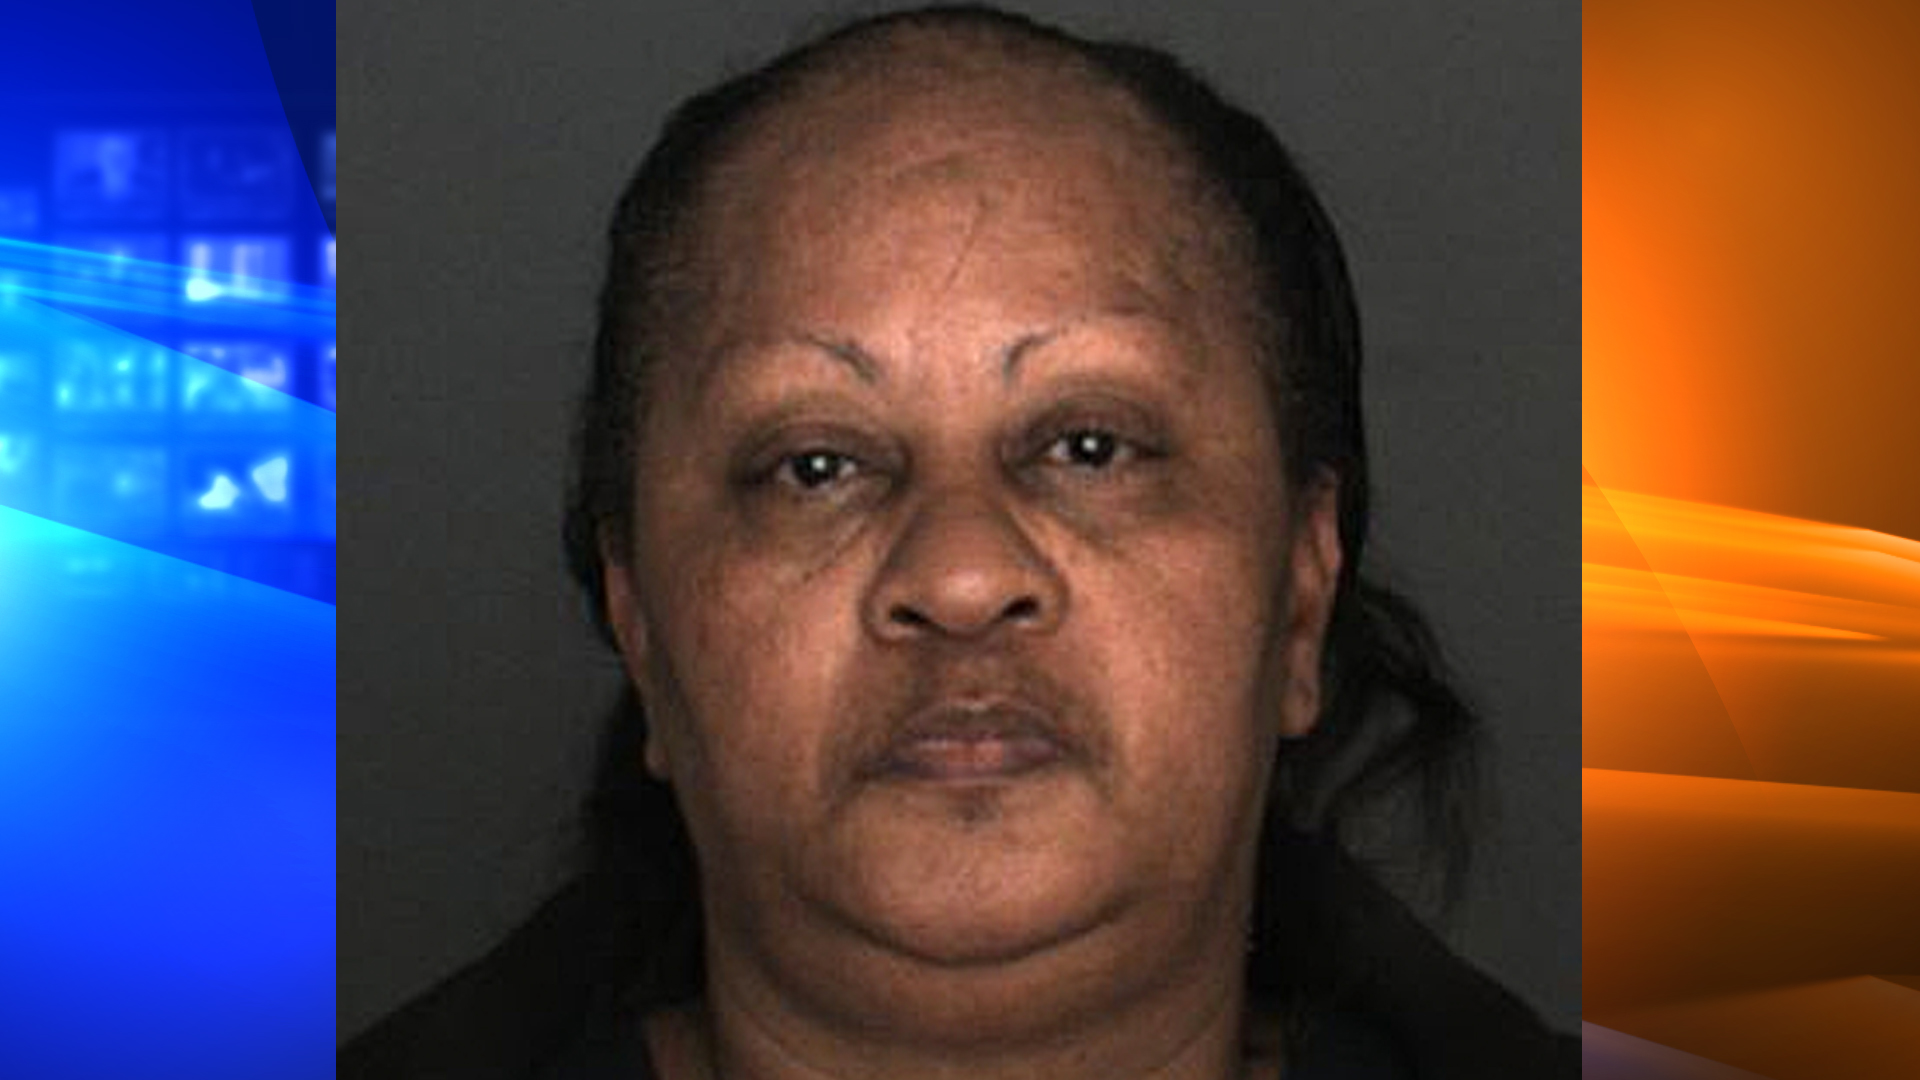 Dewaina Cunningham is seen in an image provided by the San Bernardino County Sheriff's Department.